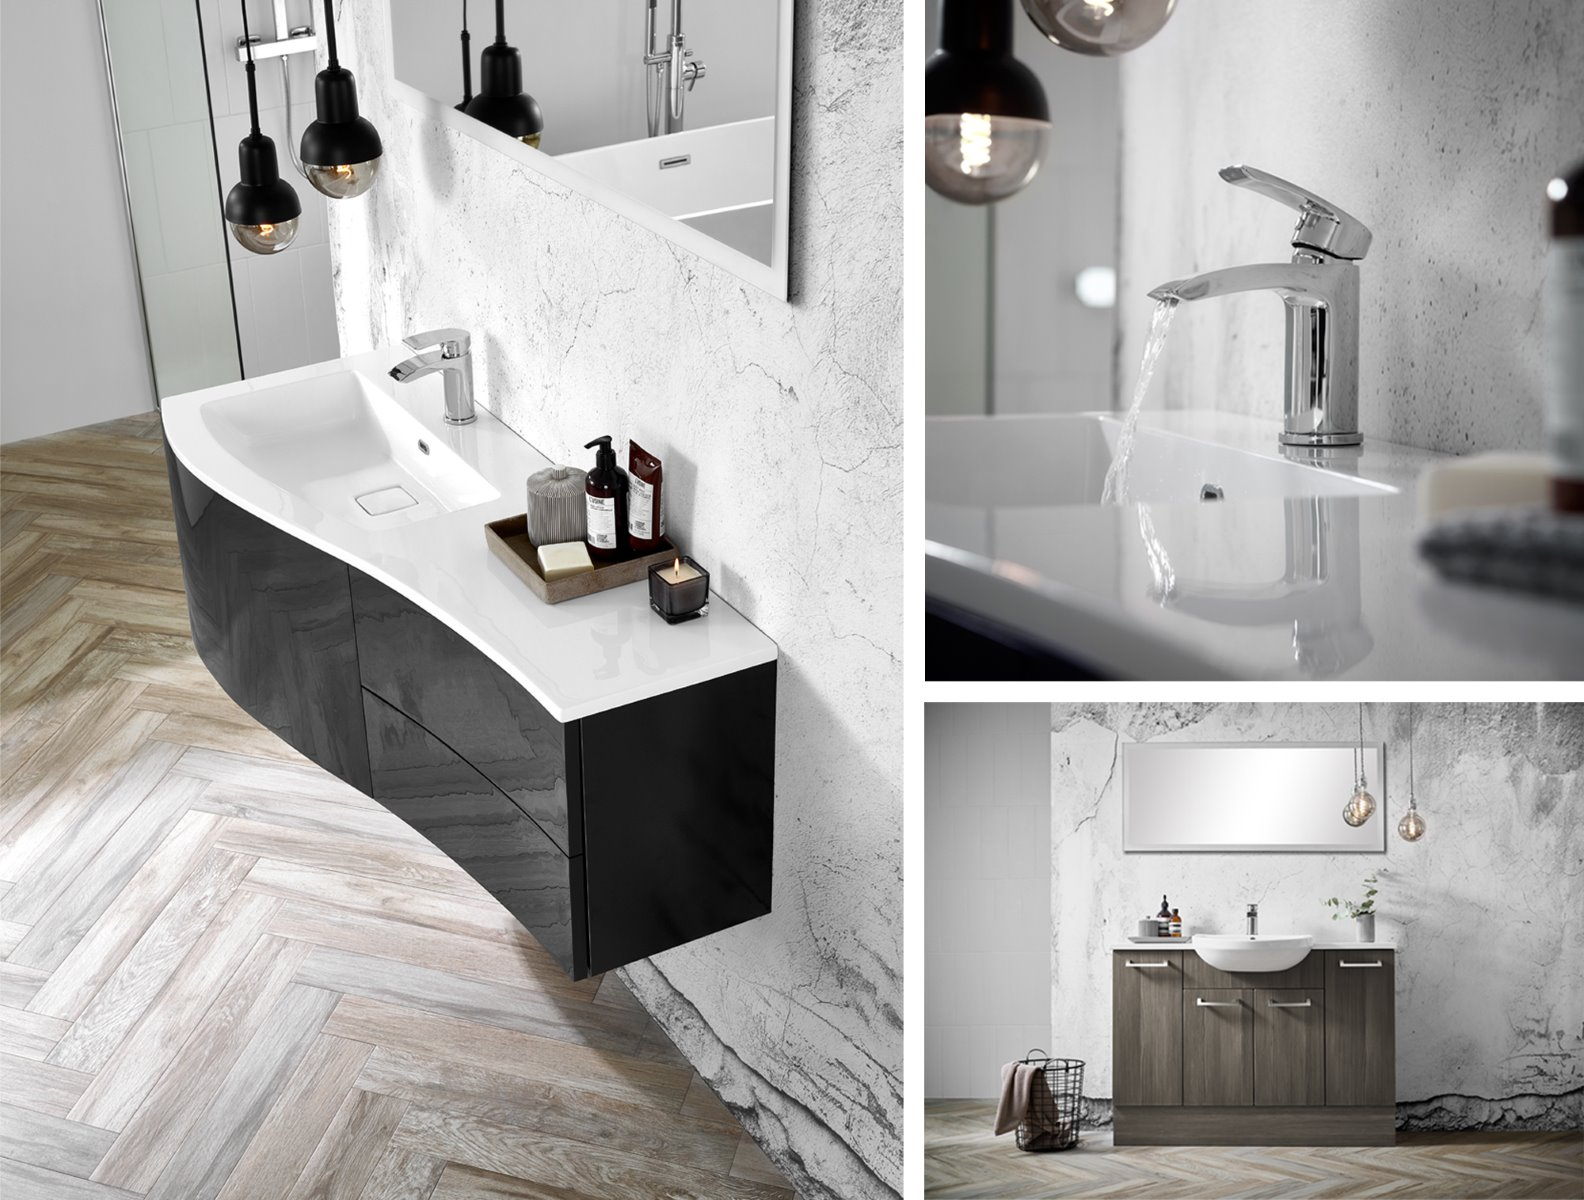 Cameo bathroom furniture studio